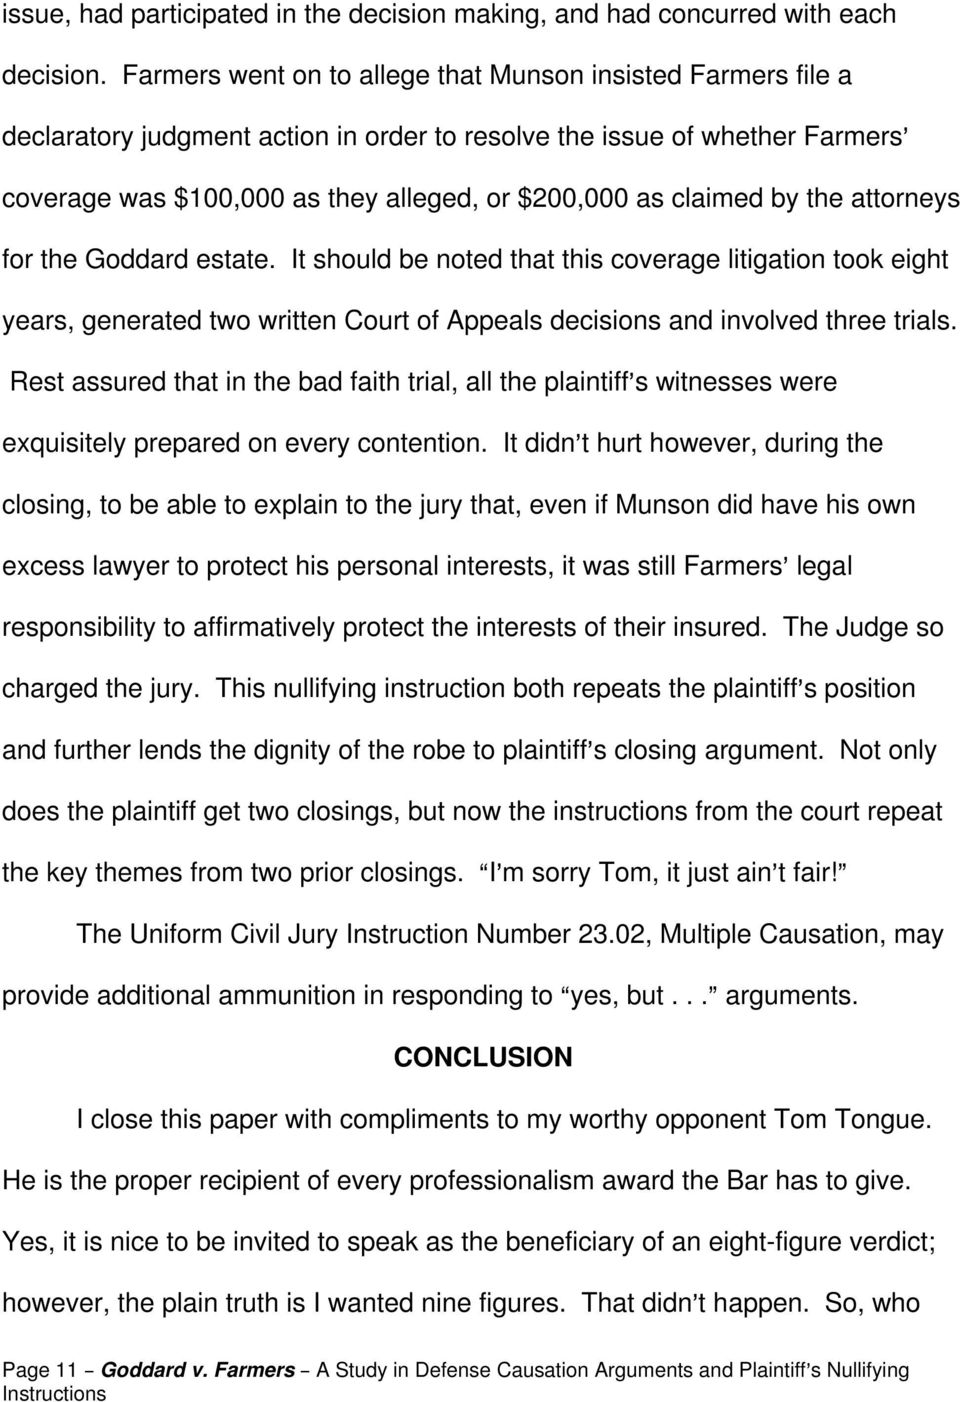 claimed by the attorneys for the Goddard estate. It should be noted that this coverage litigation took eight years, generated two written Court of Appeals decisions and involved three trials.